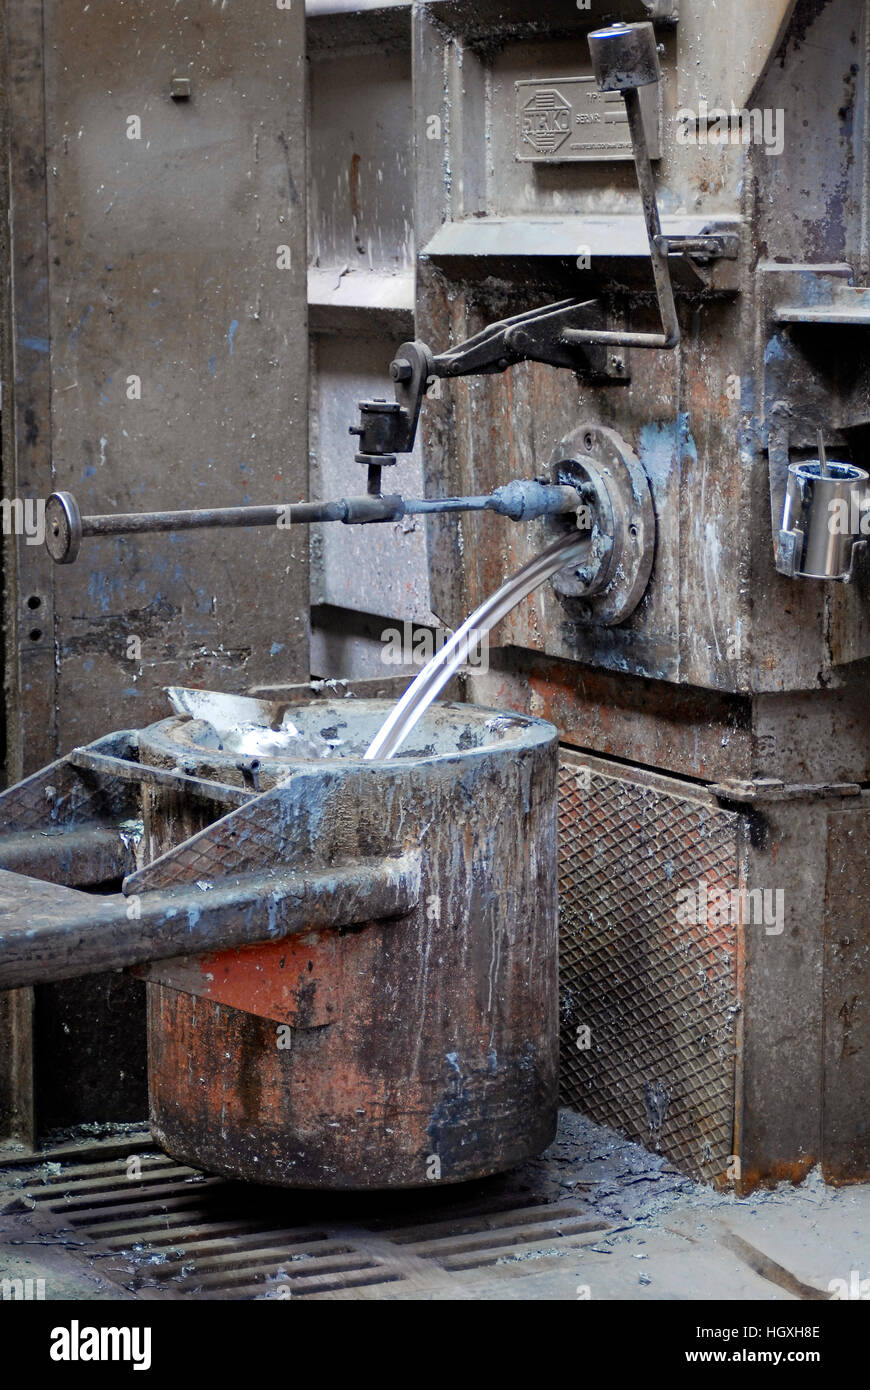 Foundry: Liquid aluminum flows into a crucible - Stock Image